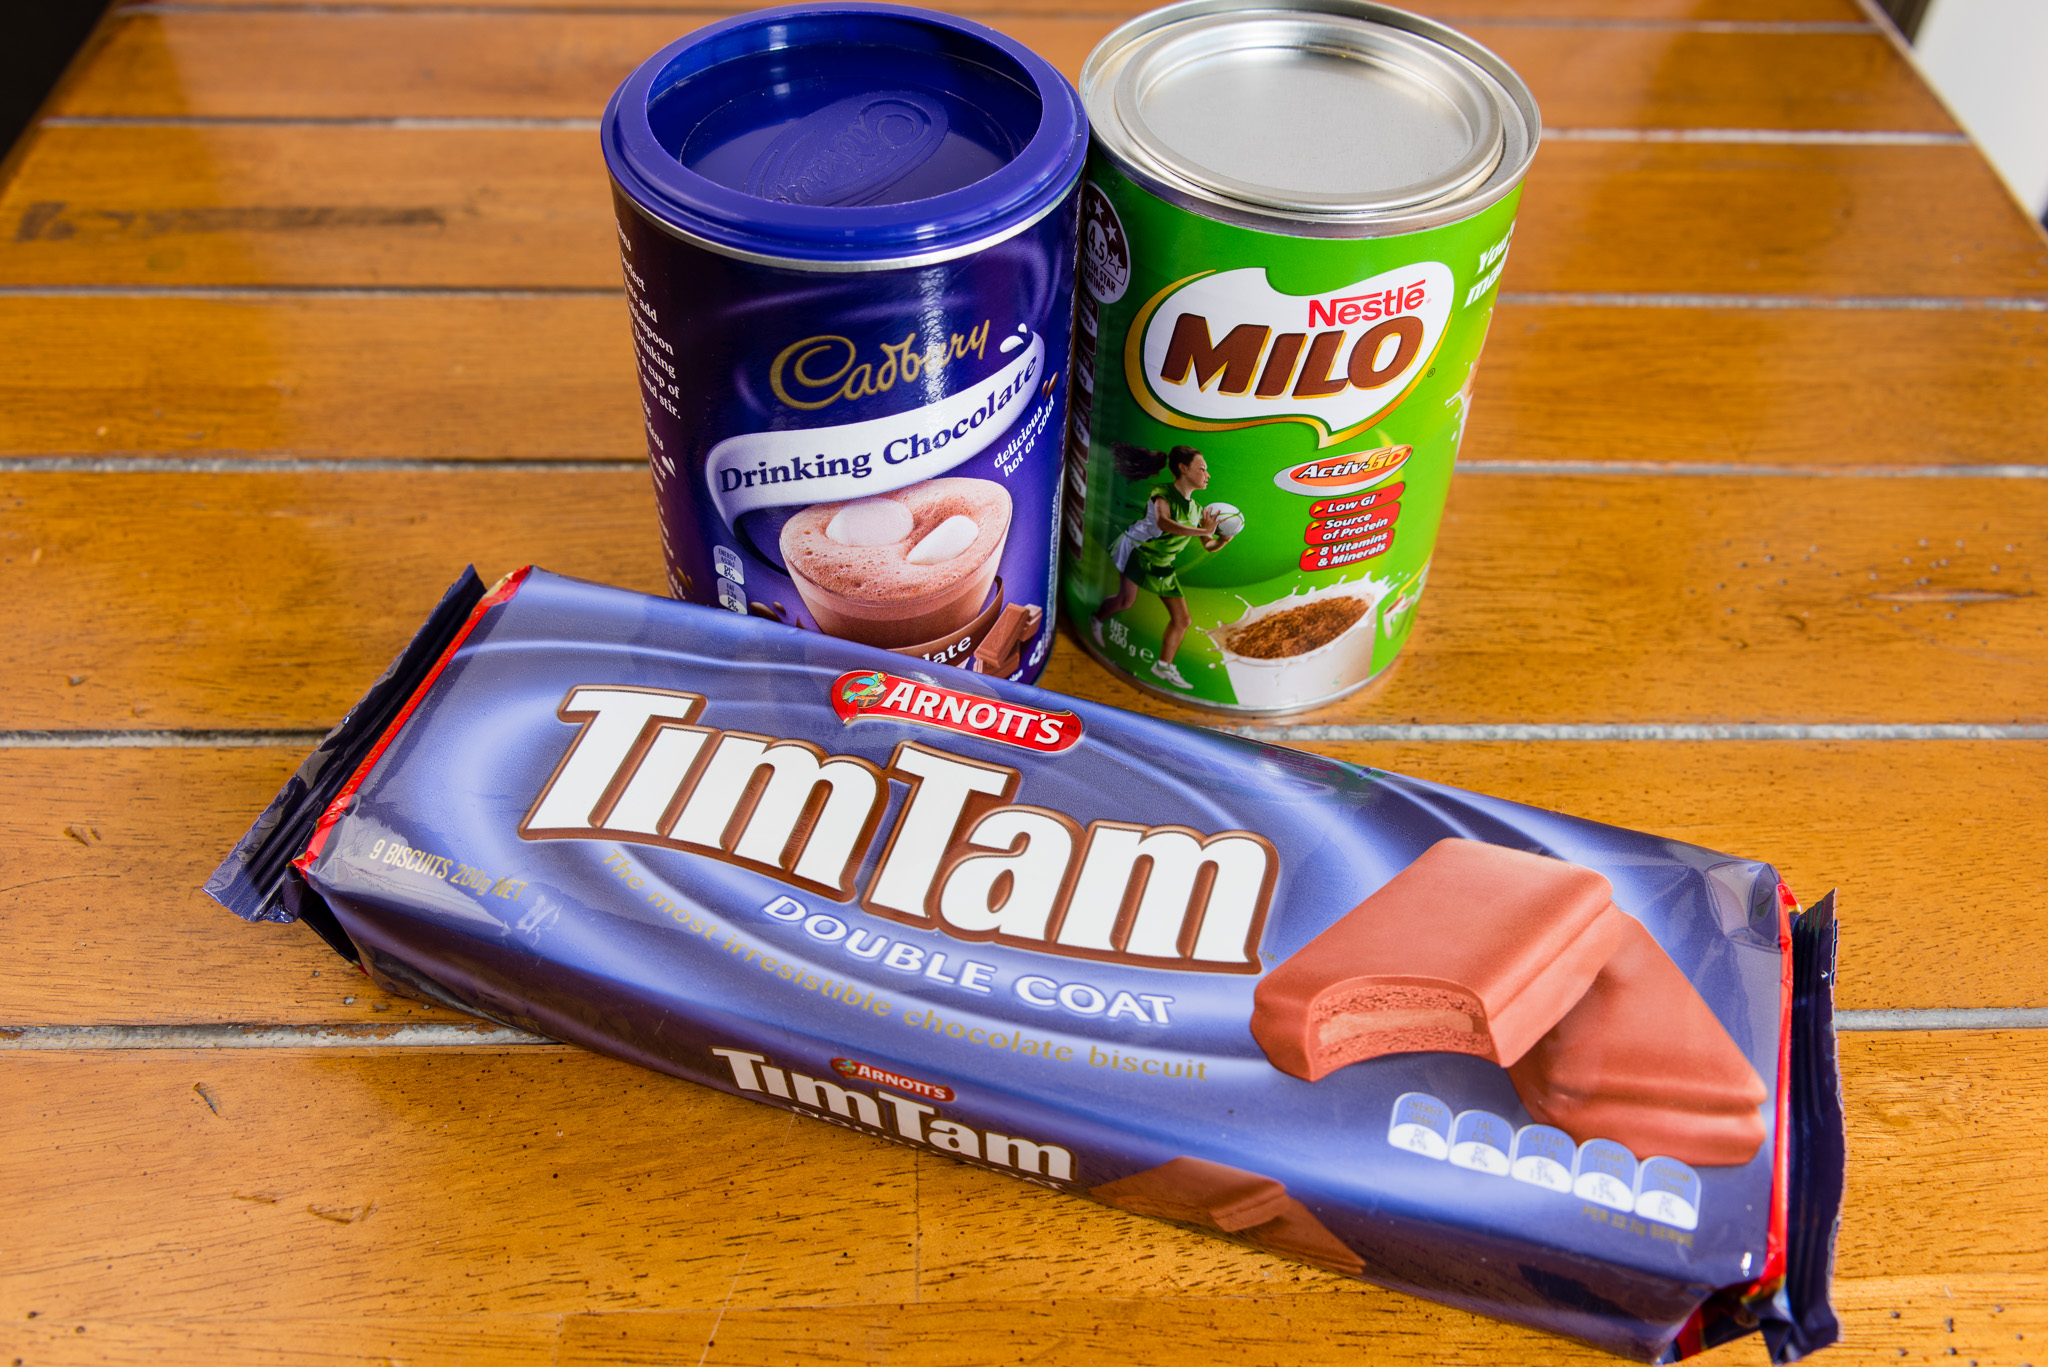 Gary Lum Double coat TimTams with Milo and drinking chocolate